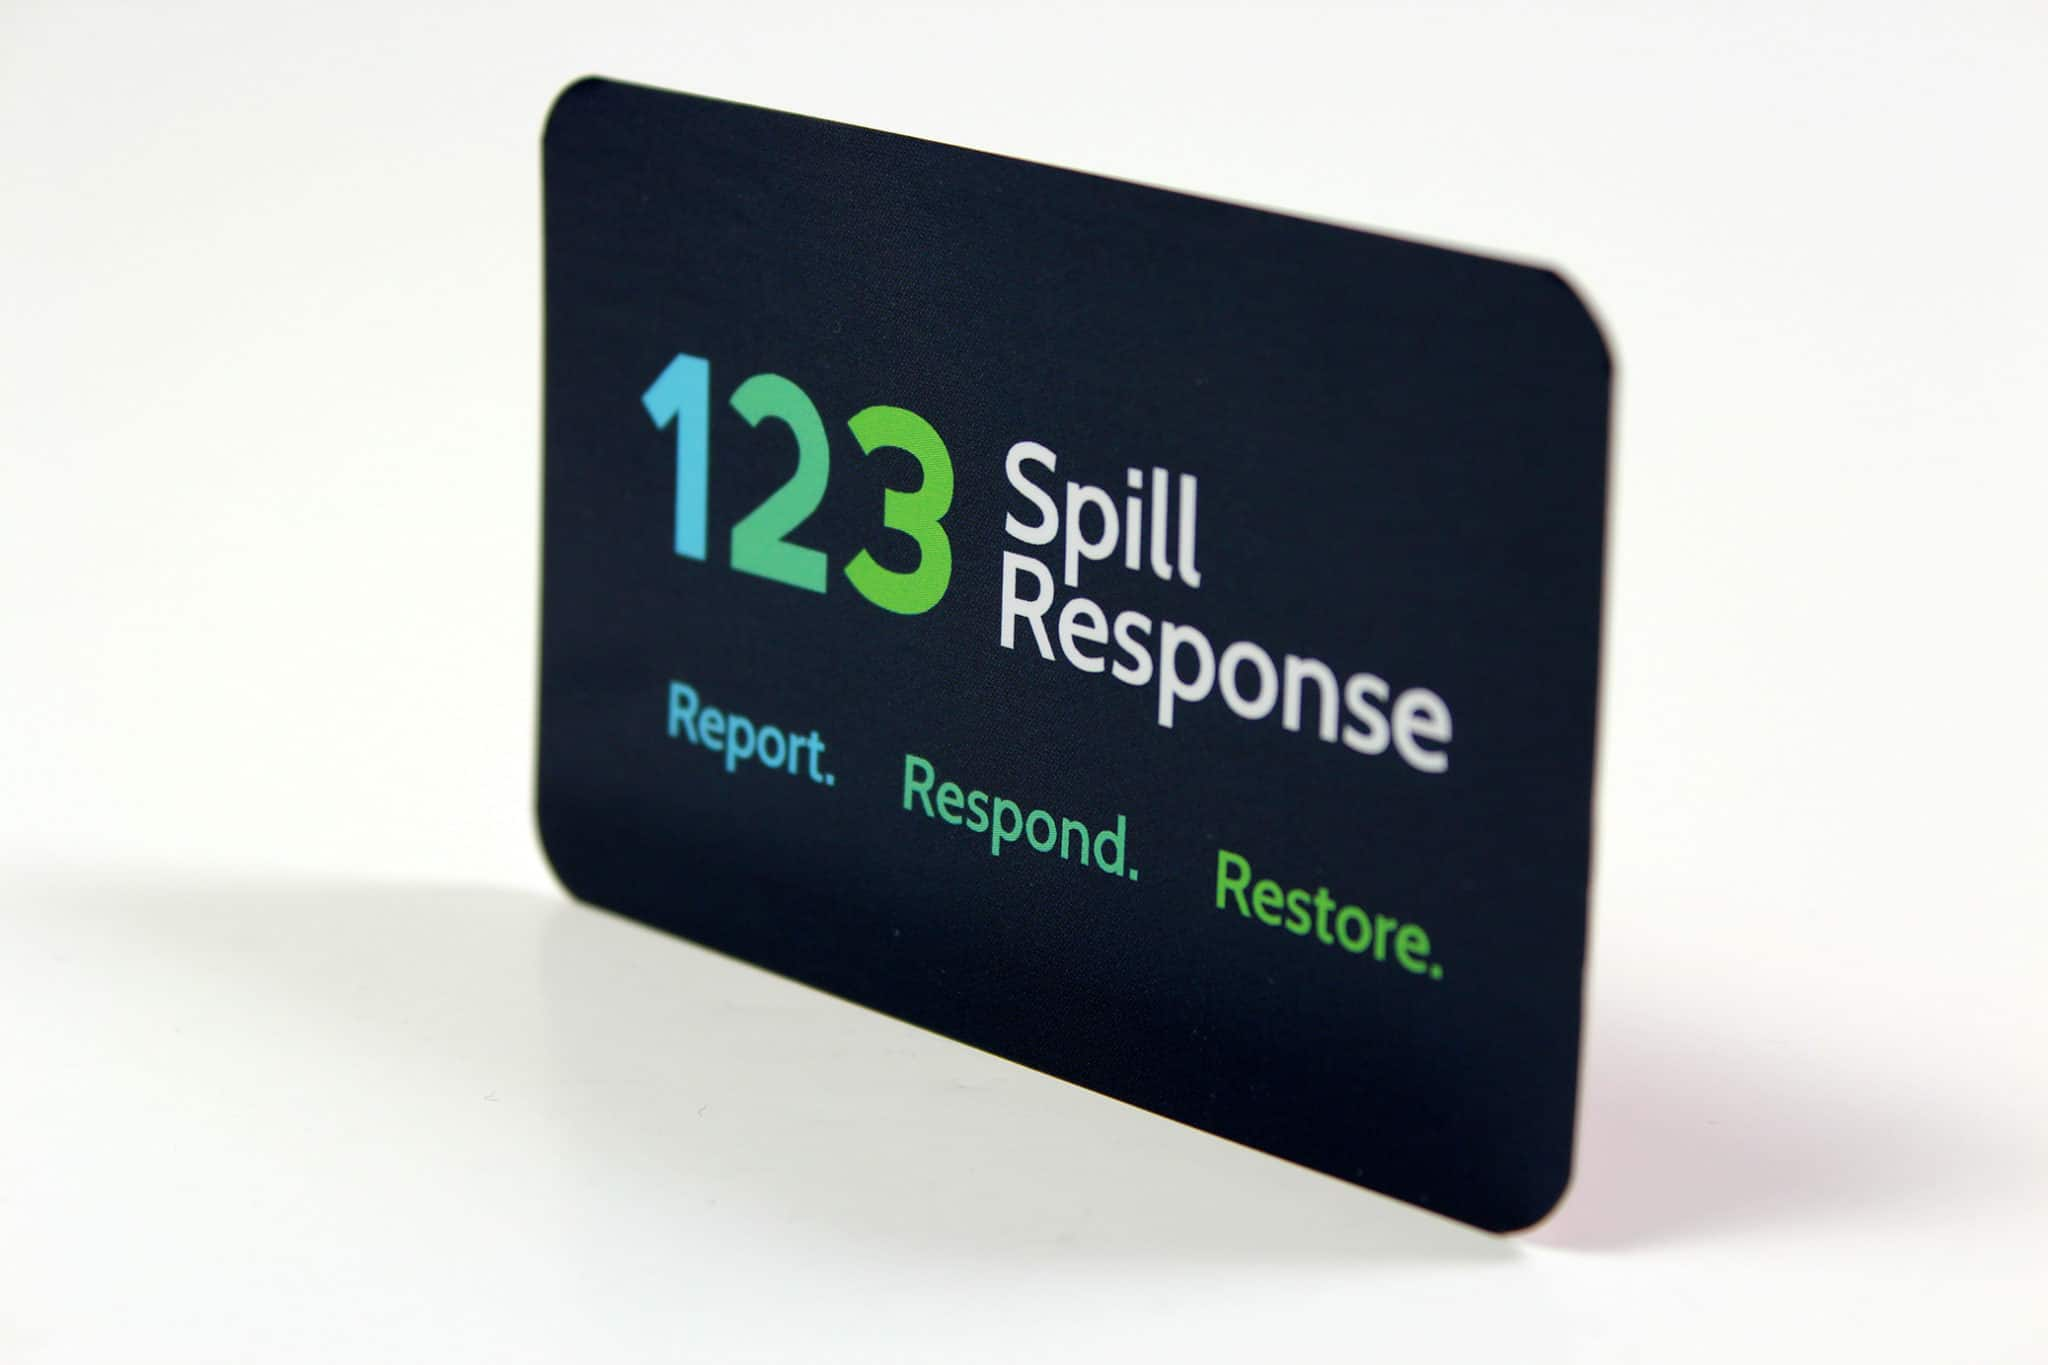 Printed Die-Cut 123 Spill Response card for OHES - Dark Blue